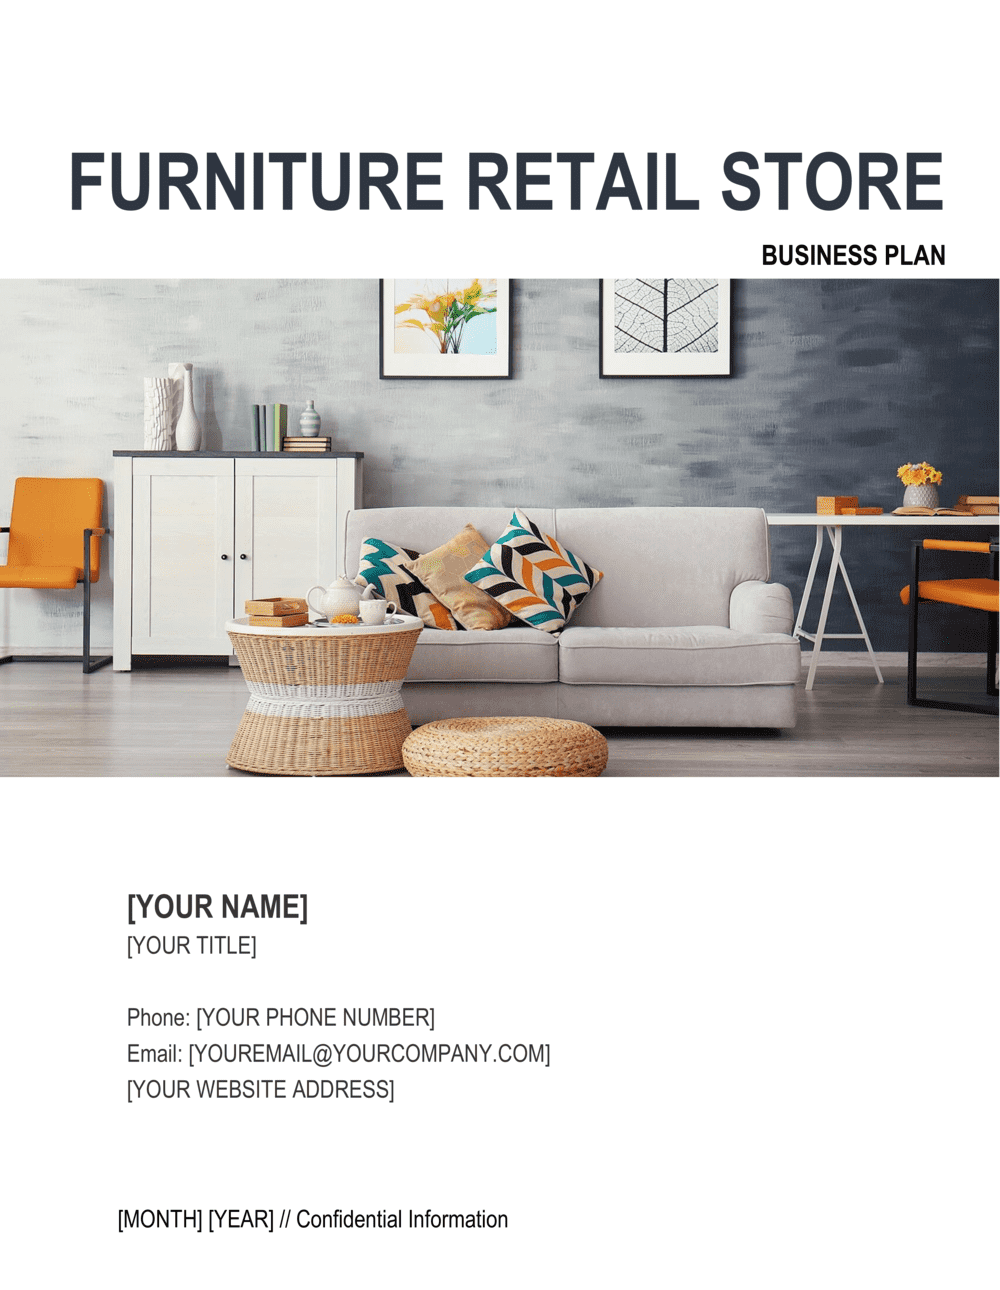 Business-in-a-Box's Furniture Retail Store Business Plan Template